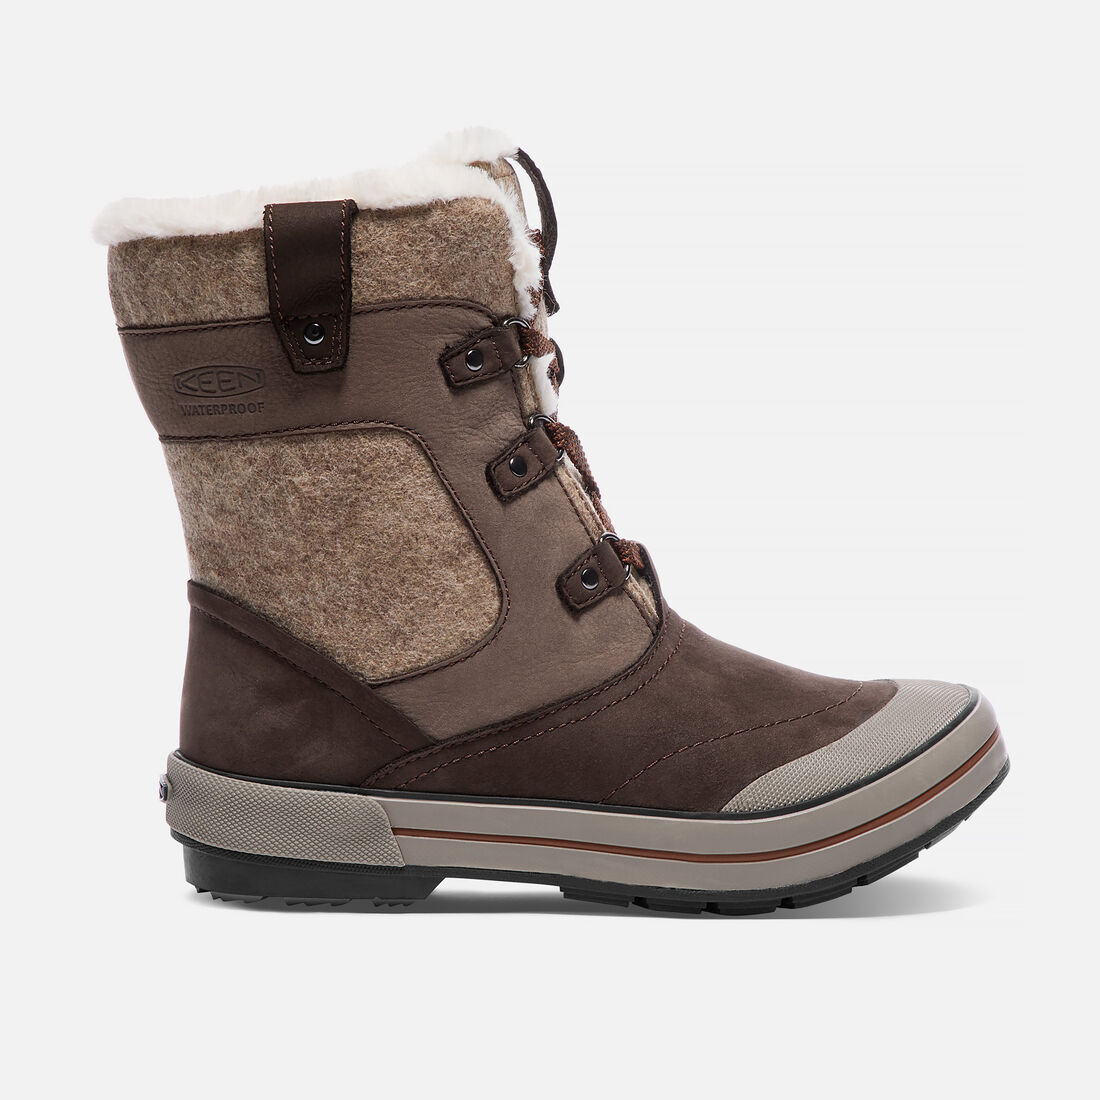 Women's ELSA PREMIUM Waterproof Mid in Espresso/Montana Grape - large view.